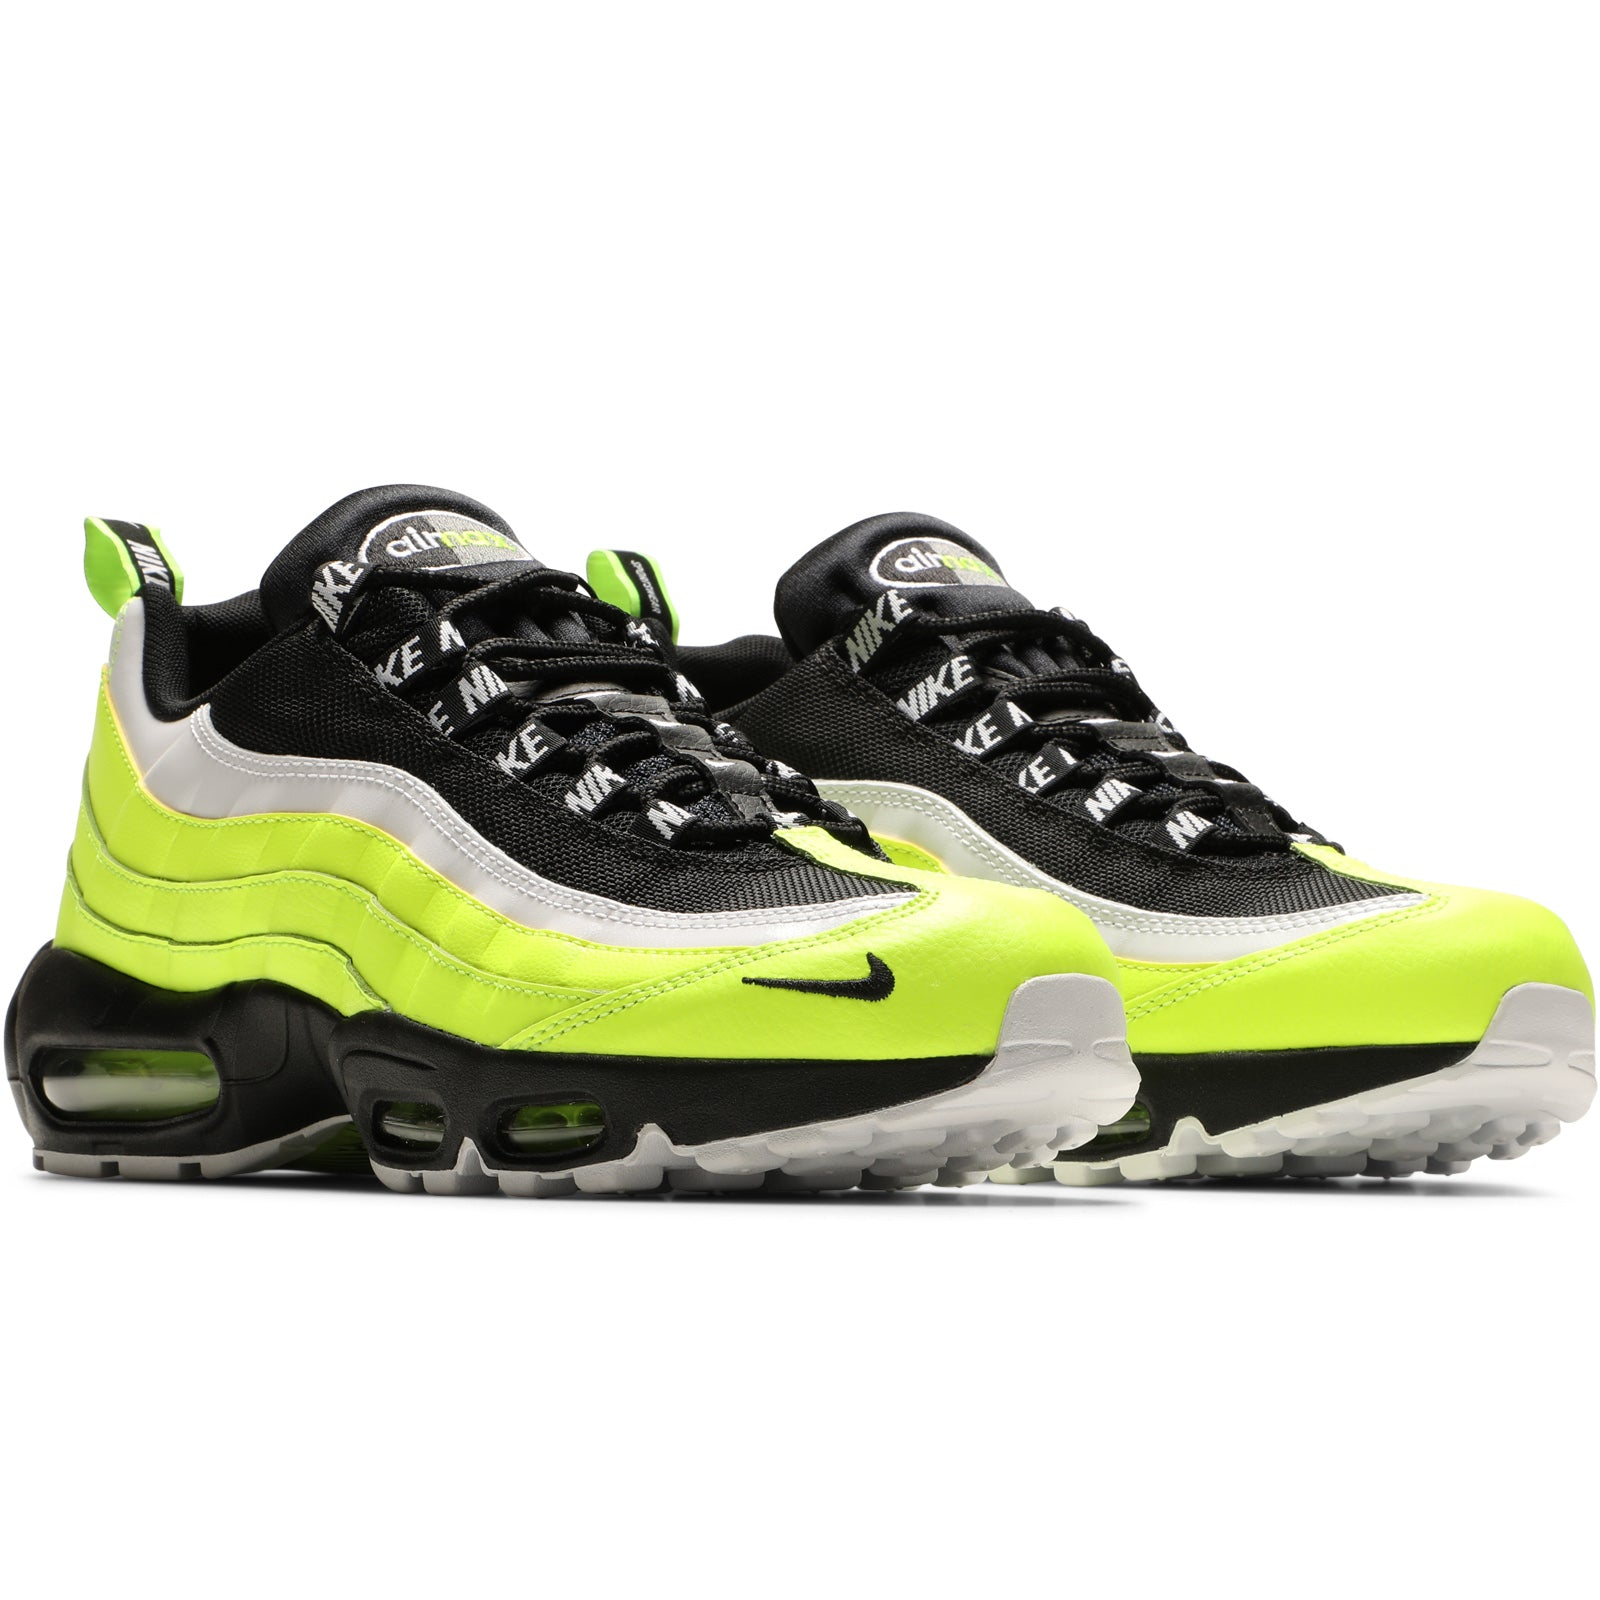 buy online 5f82f 483af Over the years, it s been reimagined and retooled, but the heritage always  remains. Nike Air Max 95 Premium